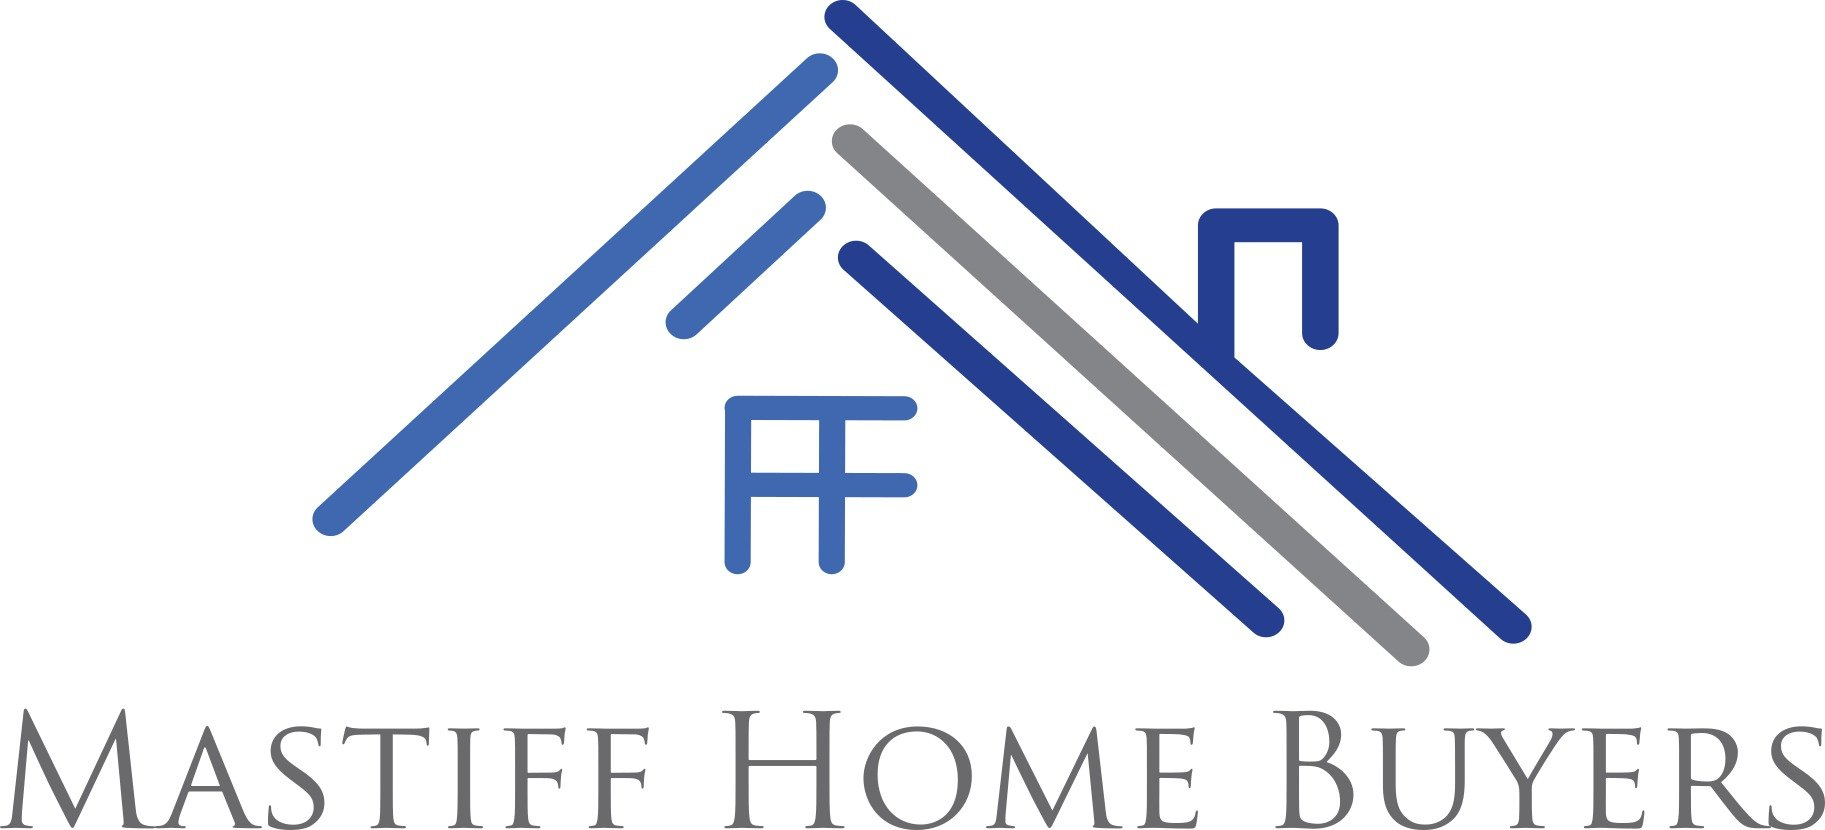 Mastiff Home Buyers logo